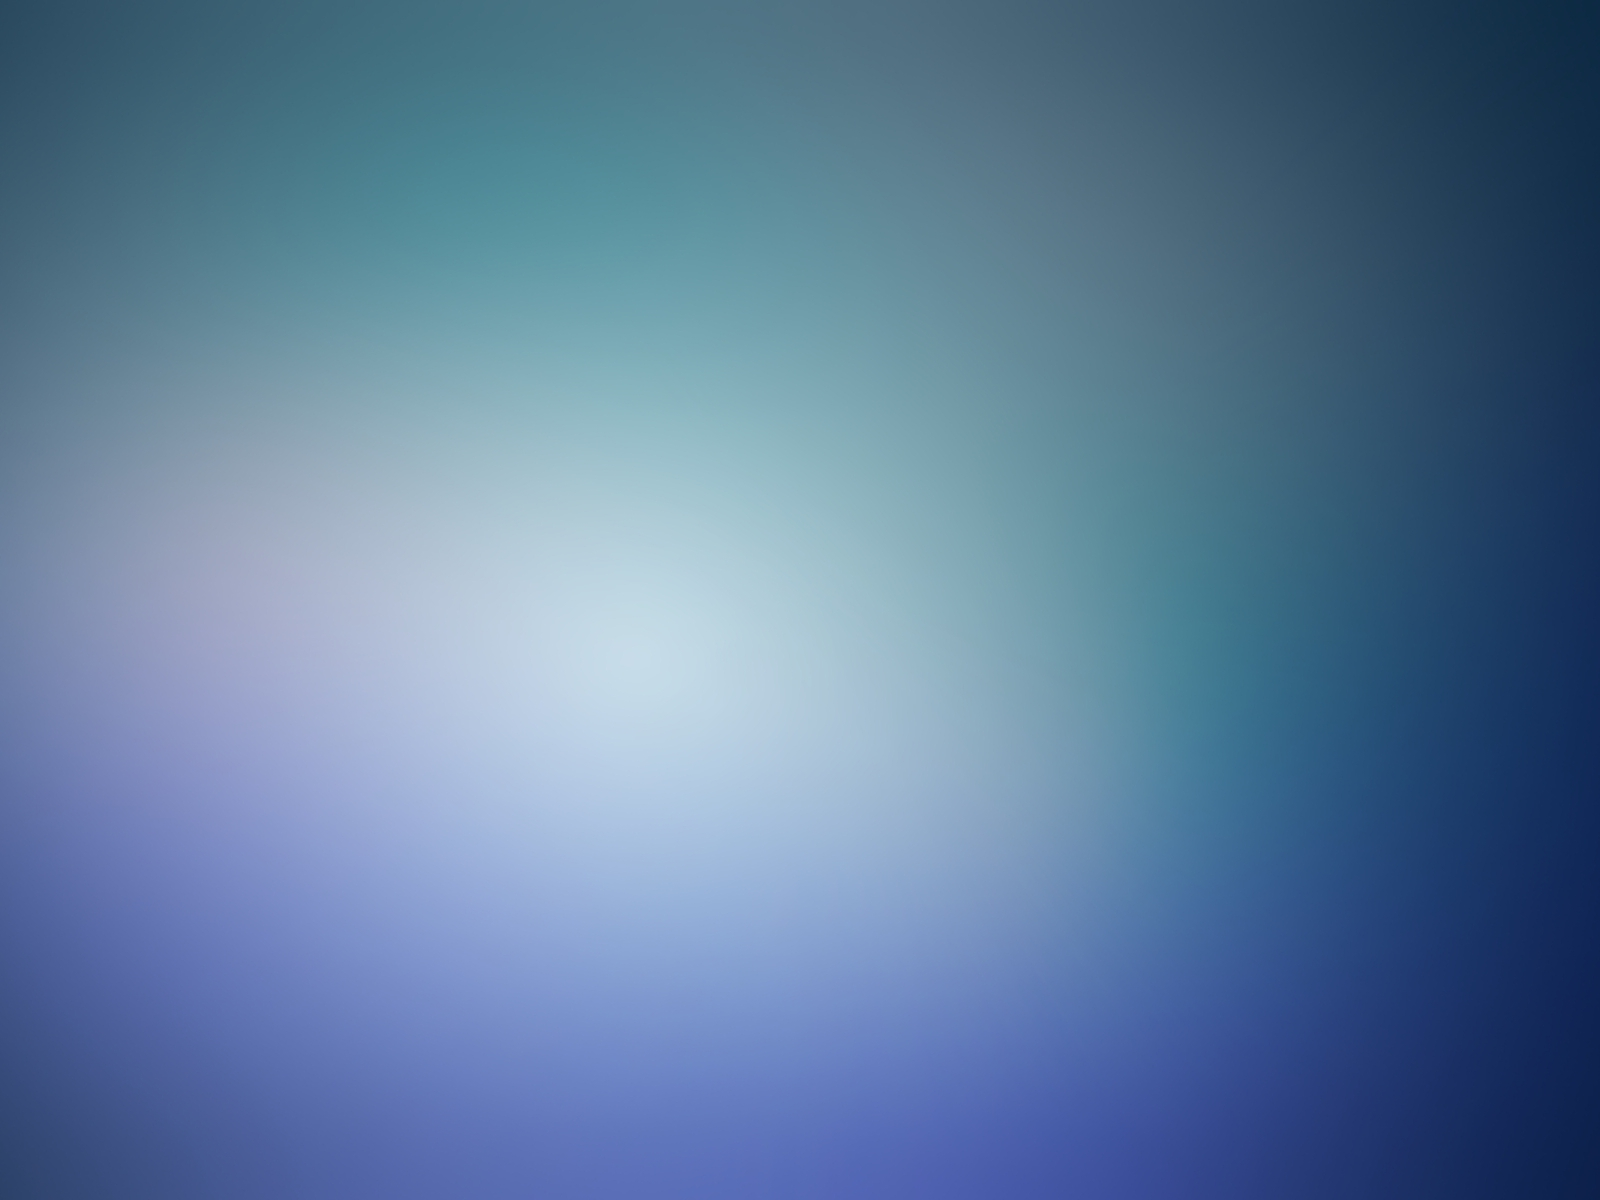 Blue minimalistic blurry gaussian blur (1600x1200)